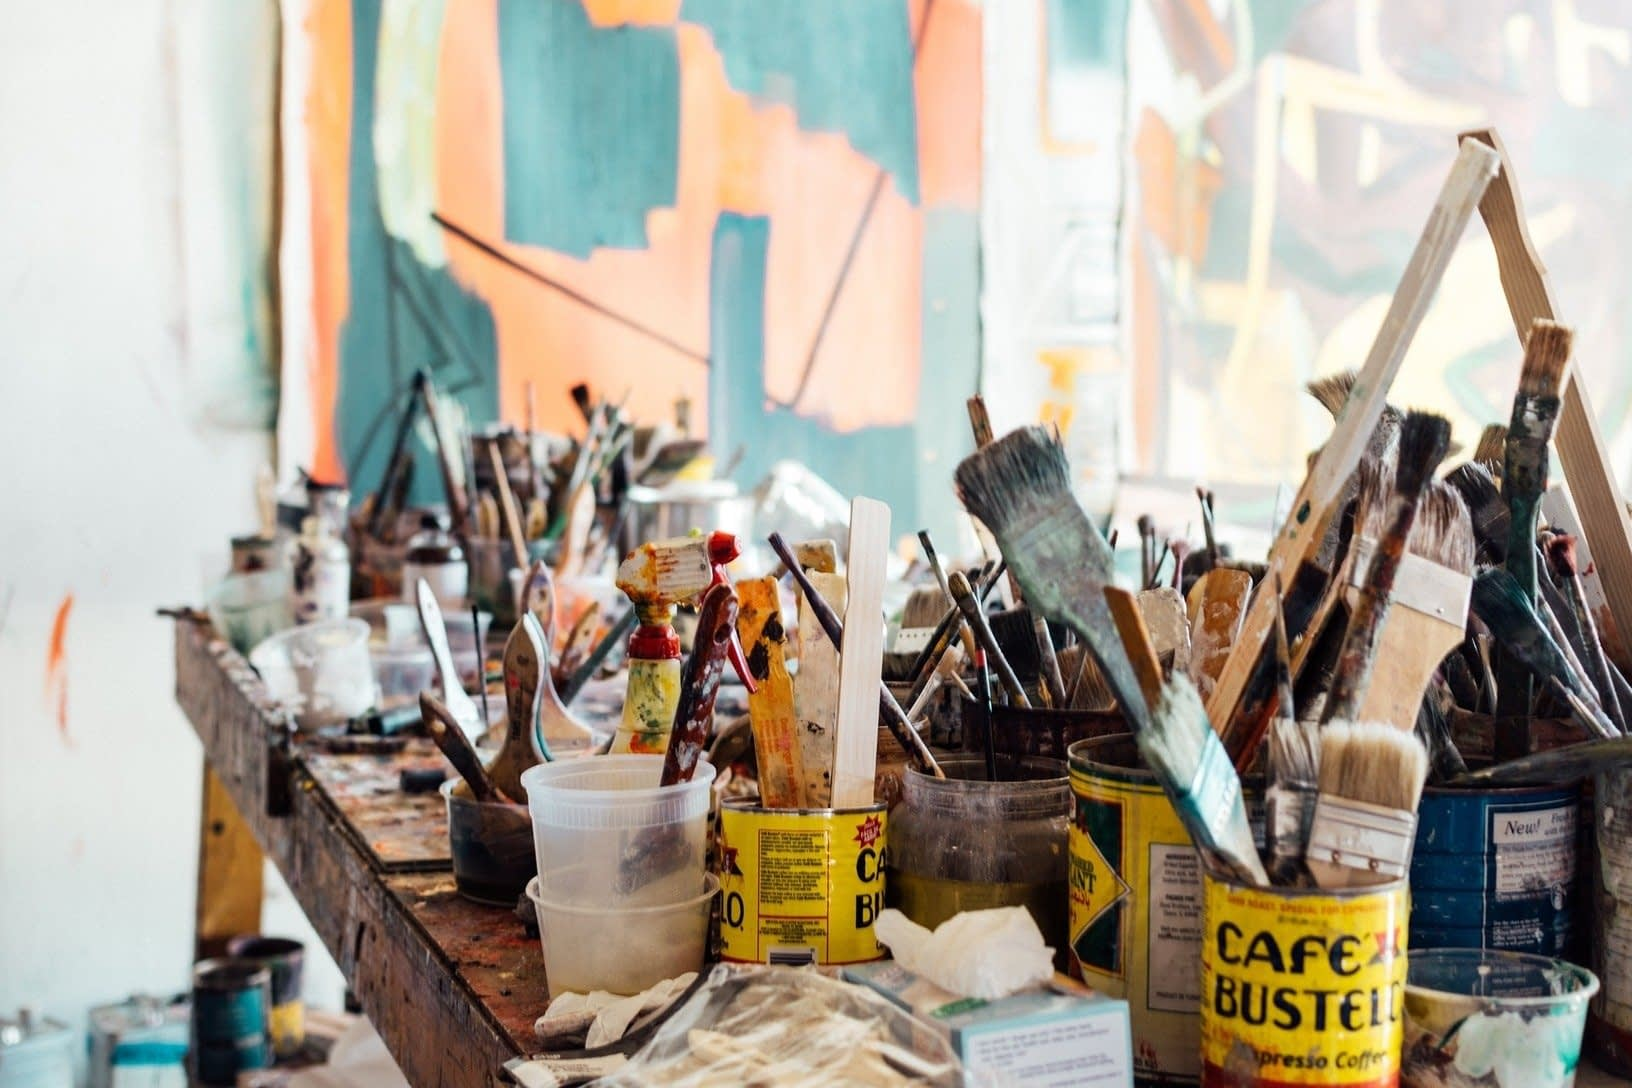 , A Spate of Lawsuits Is Targeting Art Schools for Failing to Comply With Disability Act Standards, The Circular Economy